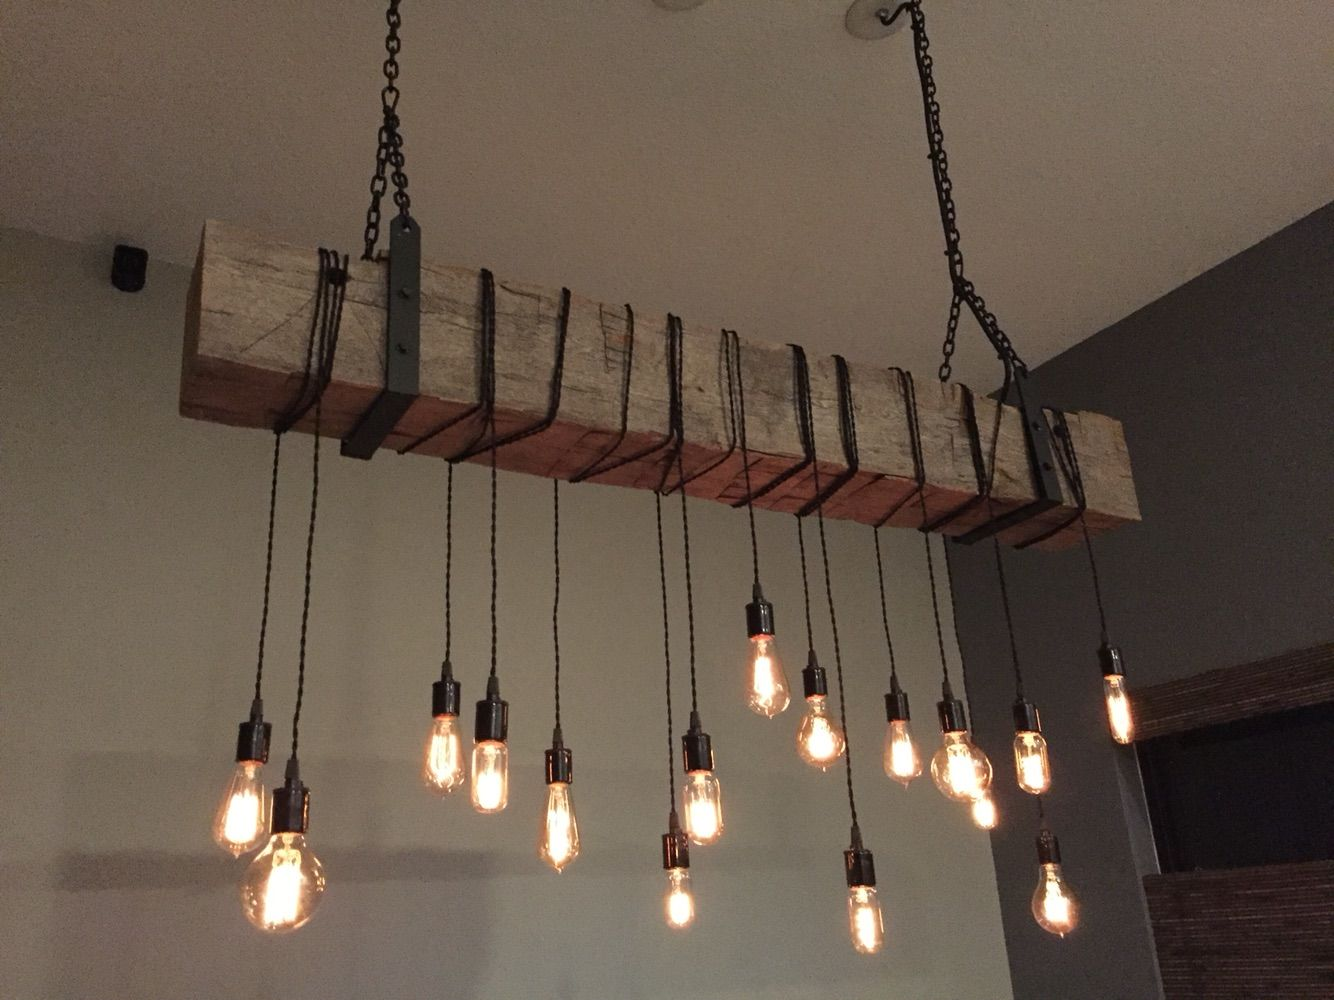 buy a custom reclaimed barn beam chandelier light fixture. modern